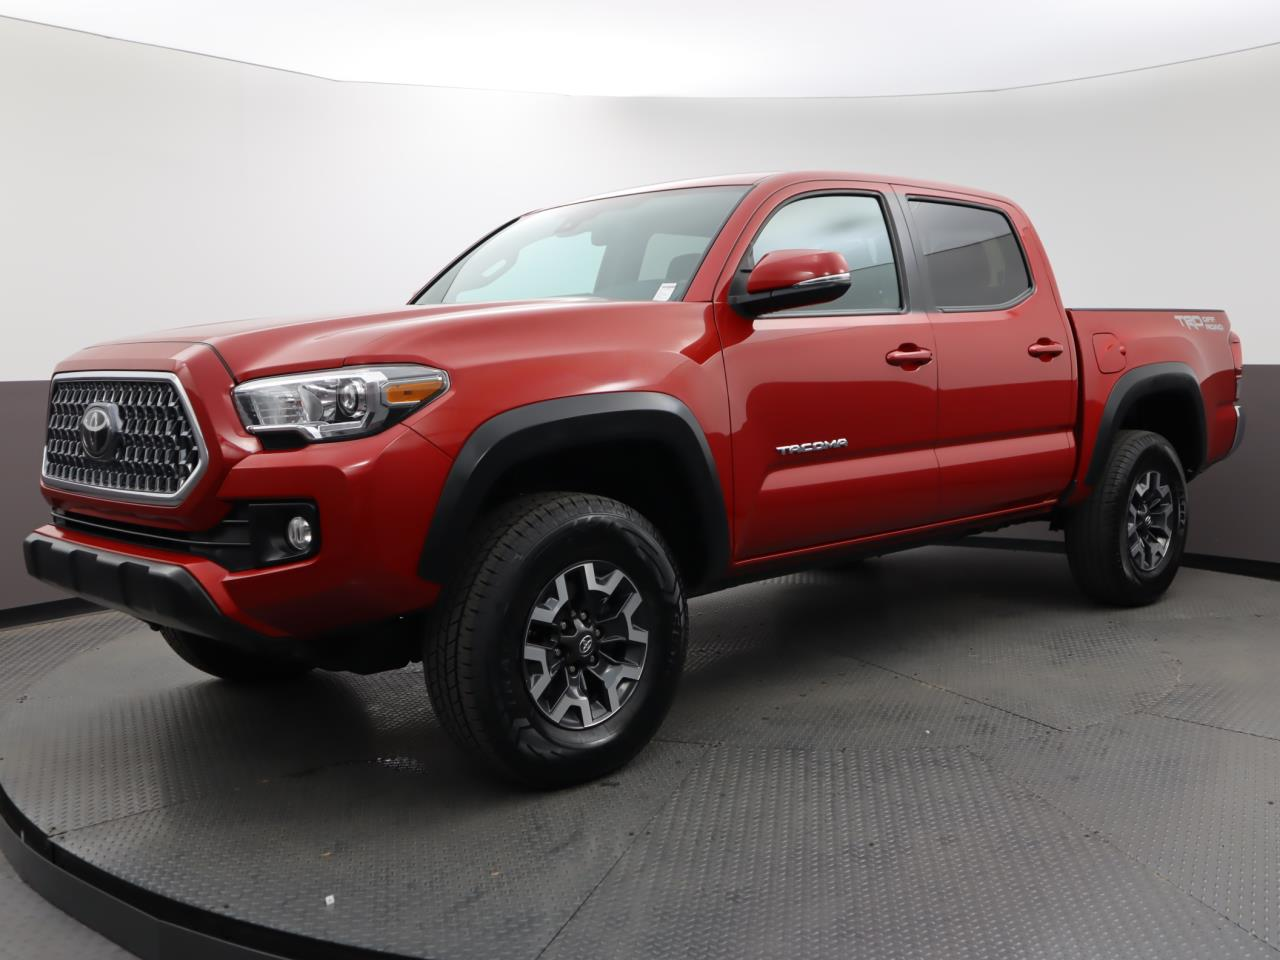 Used TOYOTA TACOMA-2WD 2019 MARGATE TRD OFF ROAD